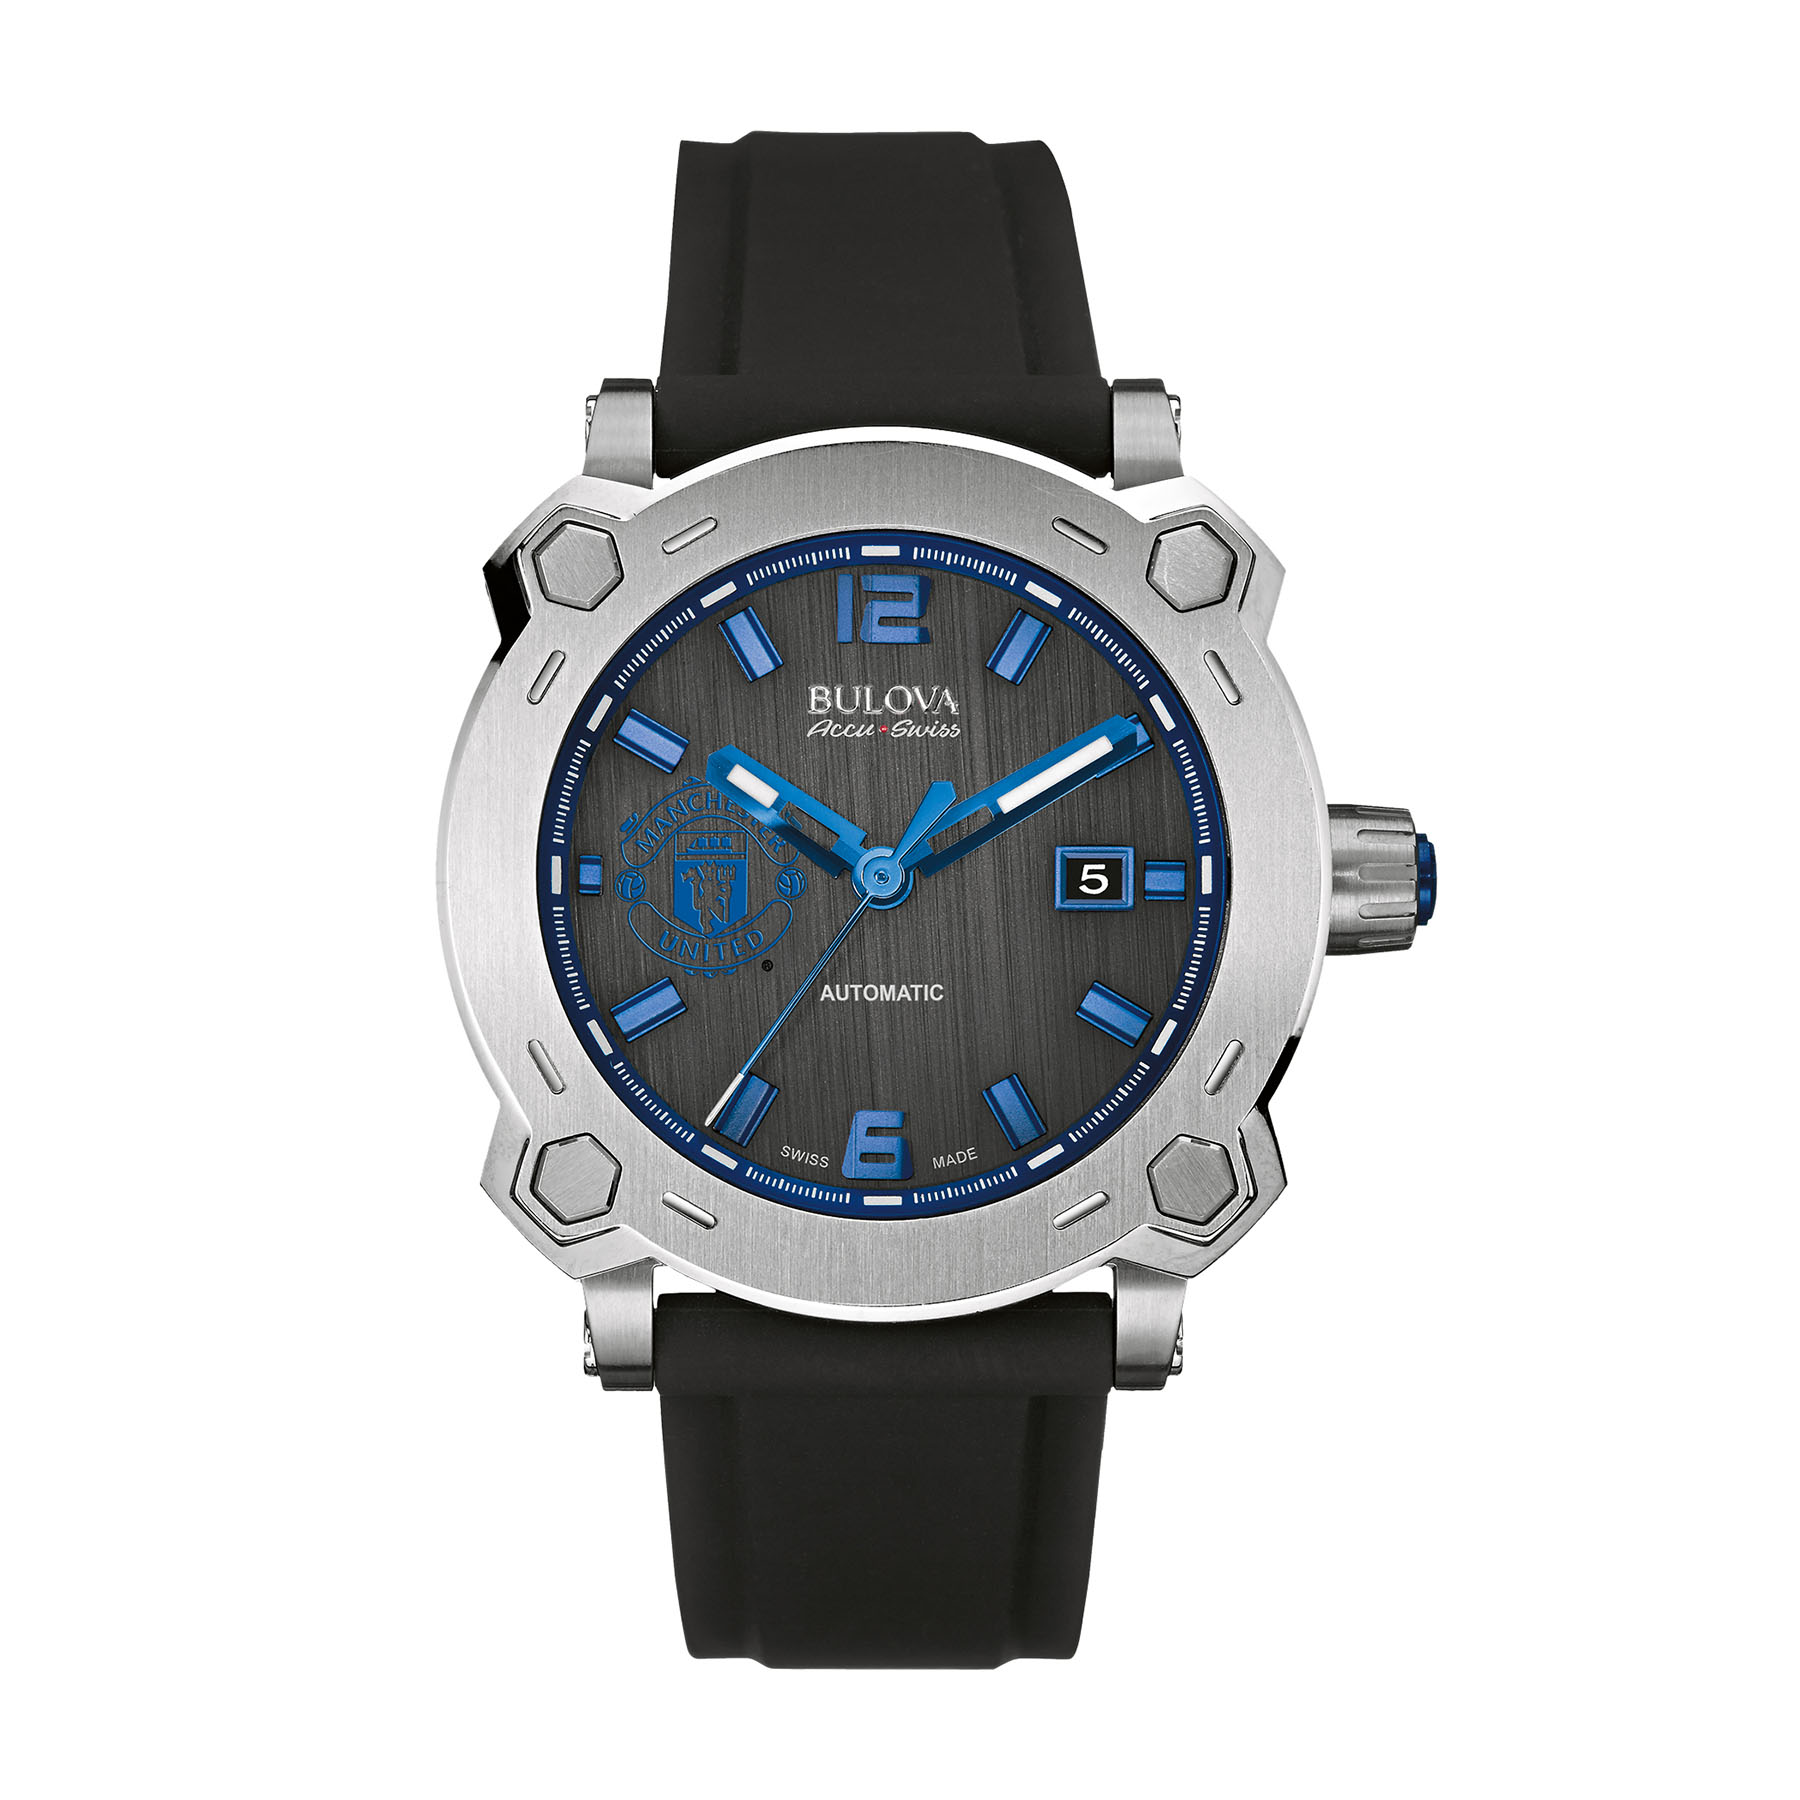 Manchester United Bulova Accu.Swiss Stainless Steel Watch - Black Dial with Blue Crest